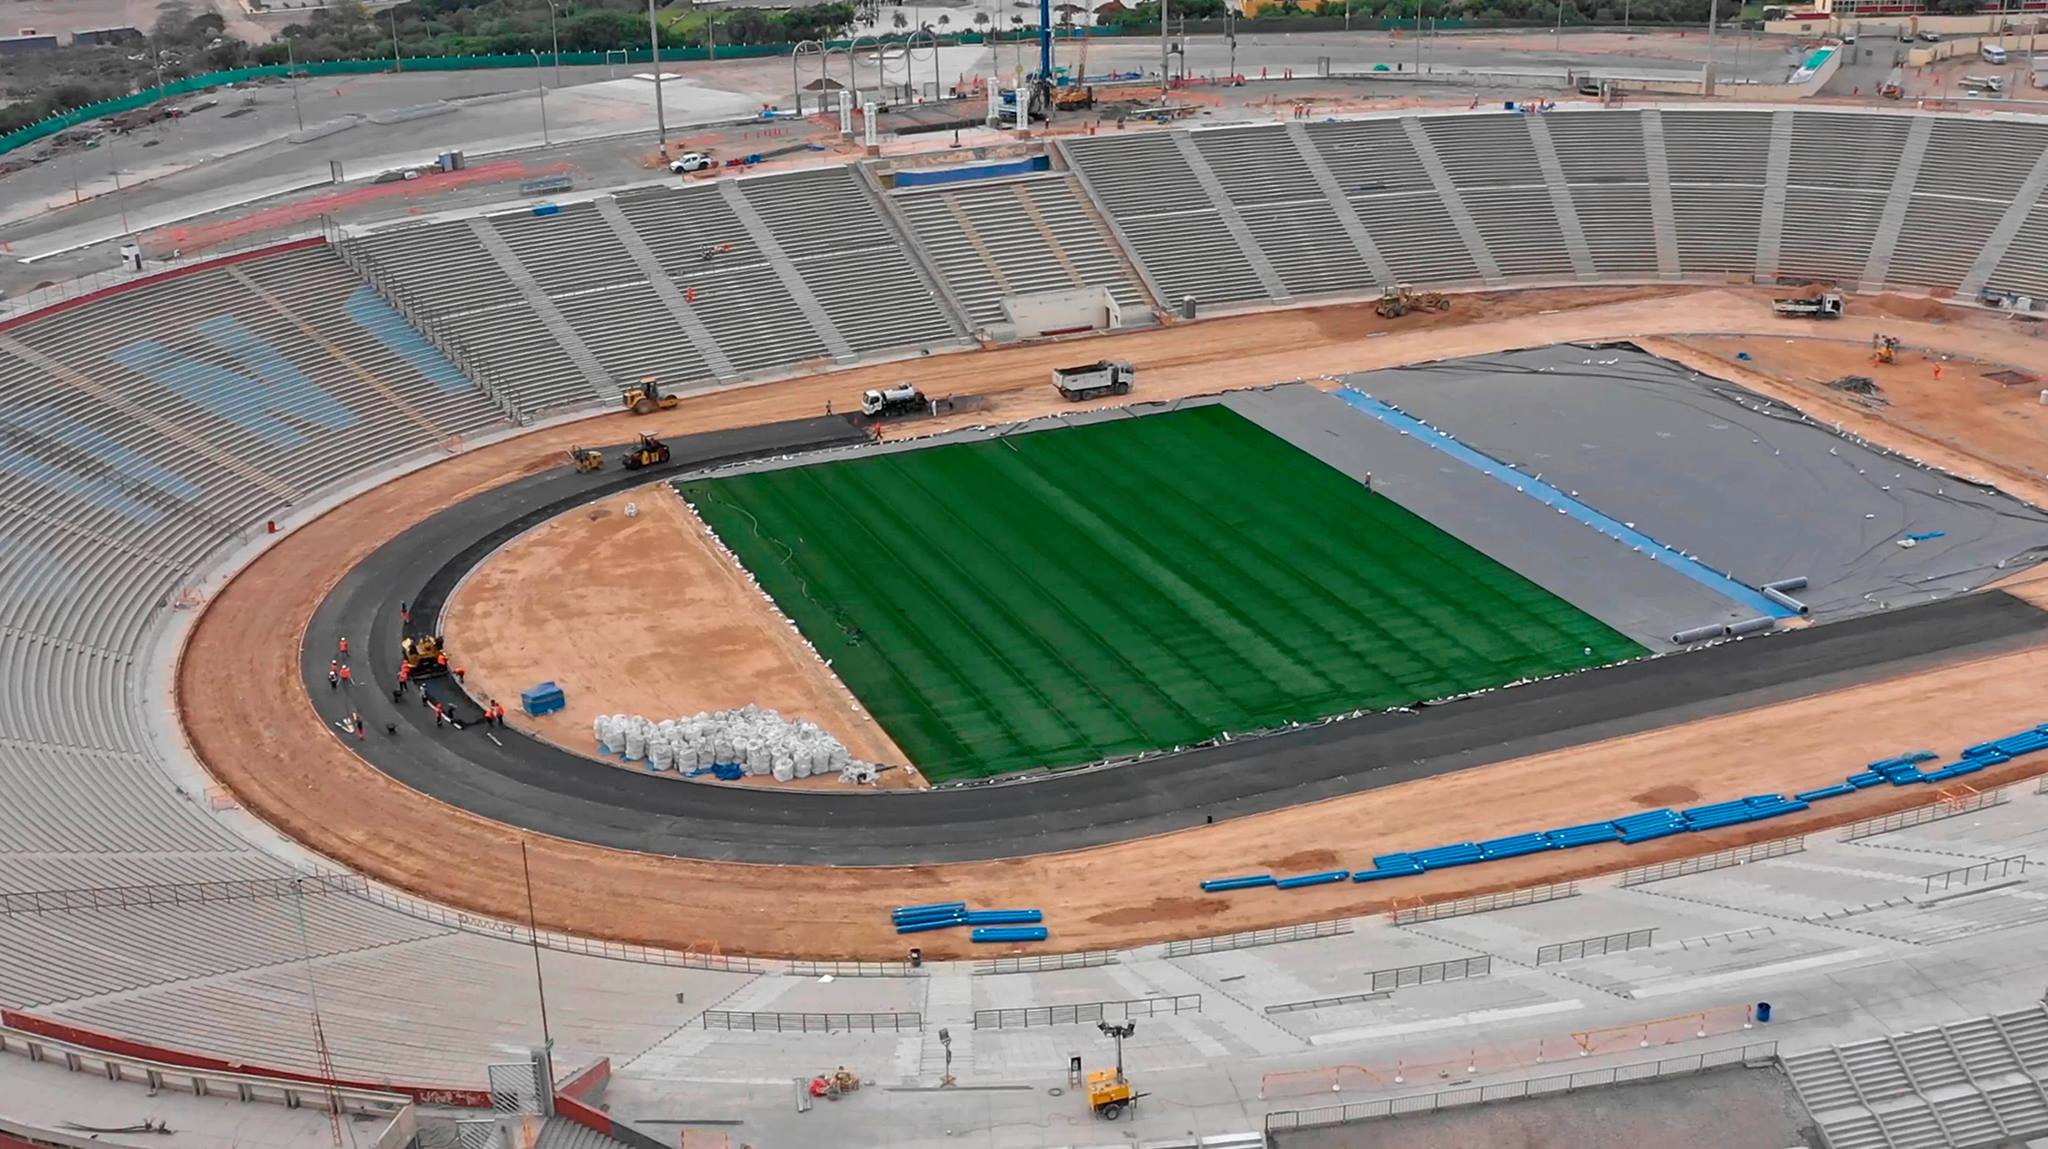 Several venues including the main stadium for the Pan American and Parapan America Games in remain under construction, though they are due to be completed next month ©Lima 2019